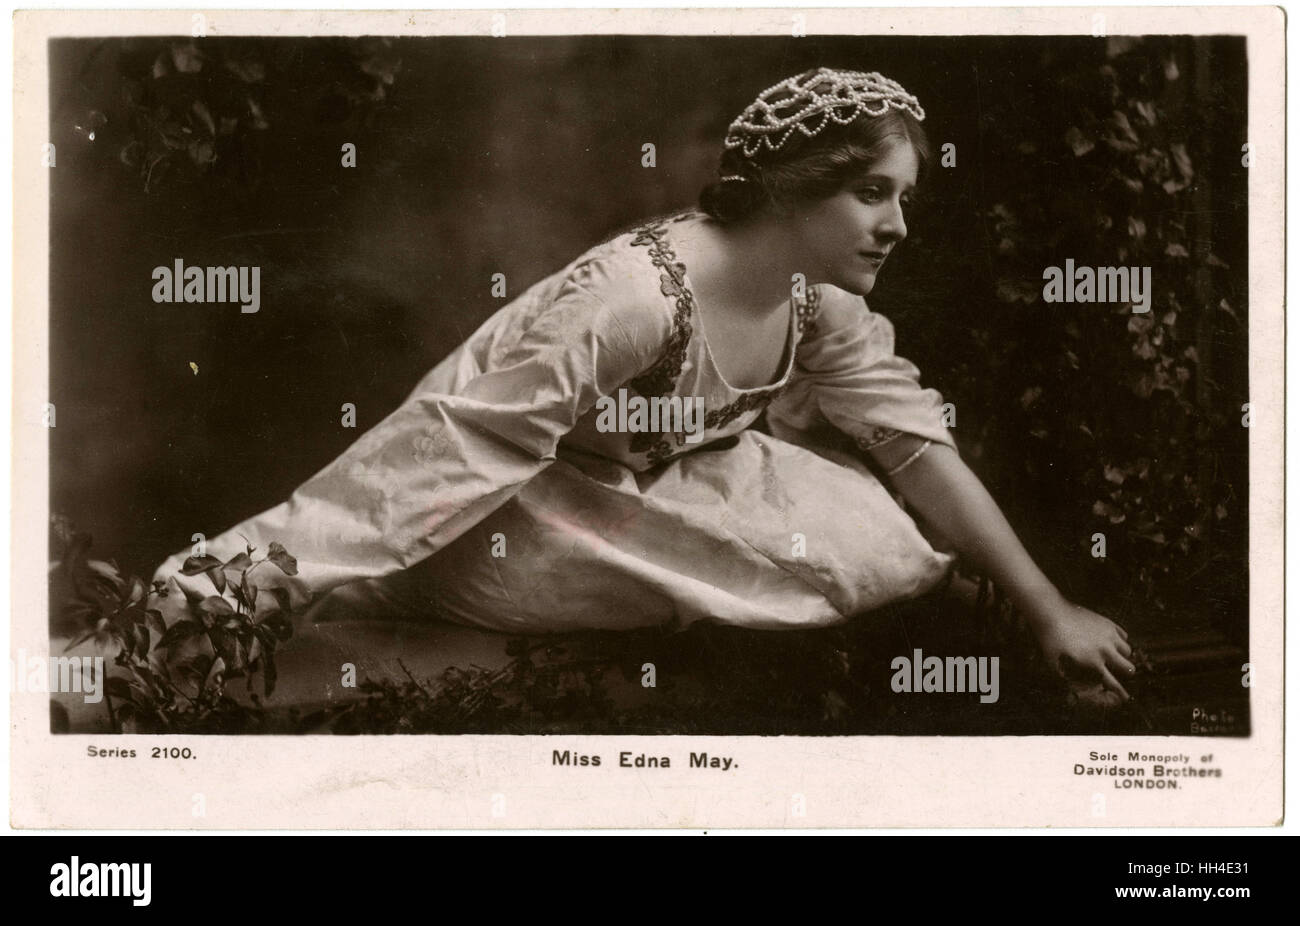 EDNA MAY (1878 – 1948), Actress, in the role of a Renaissance heroine (possibly Juliet) - Stock Image